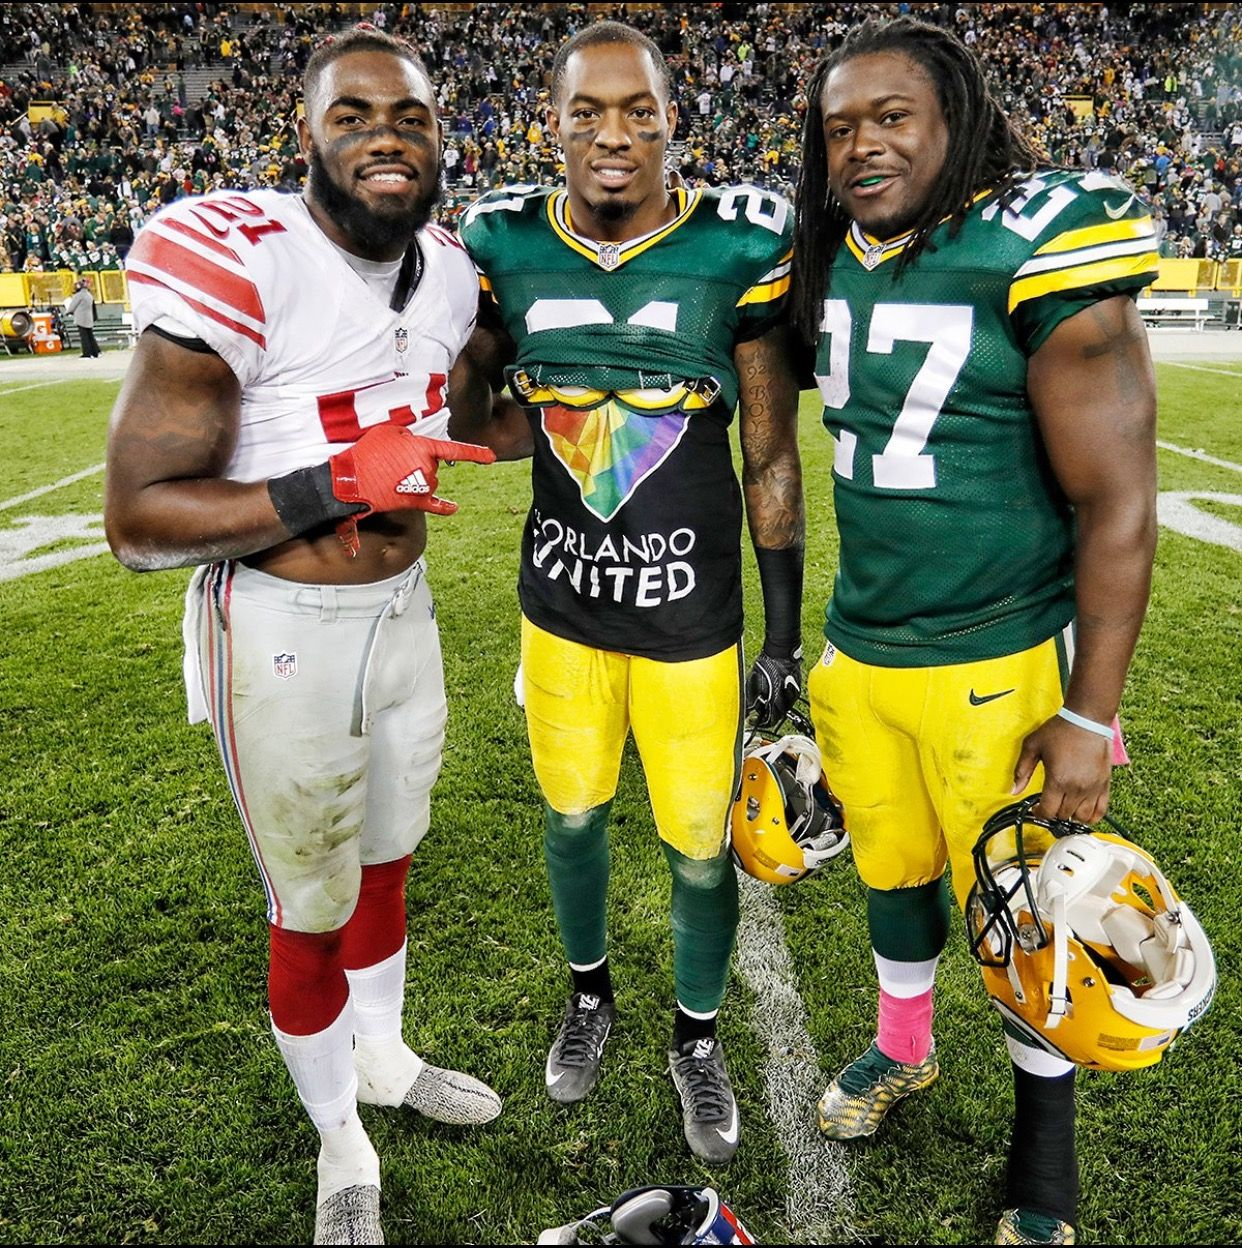 Roll tide. Alabama's finest Bama football, Nfl packers